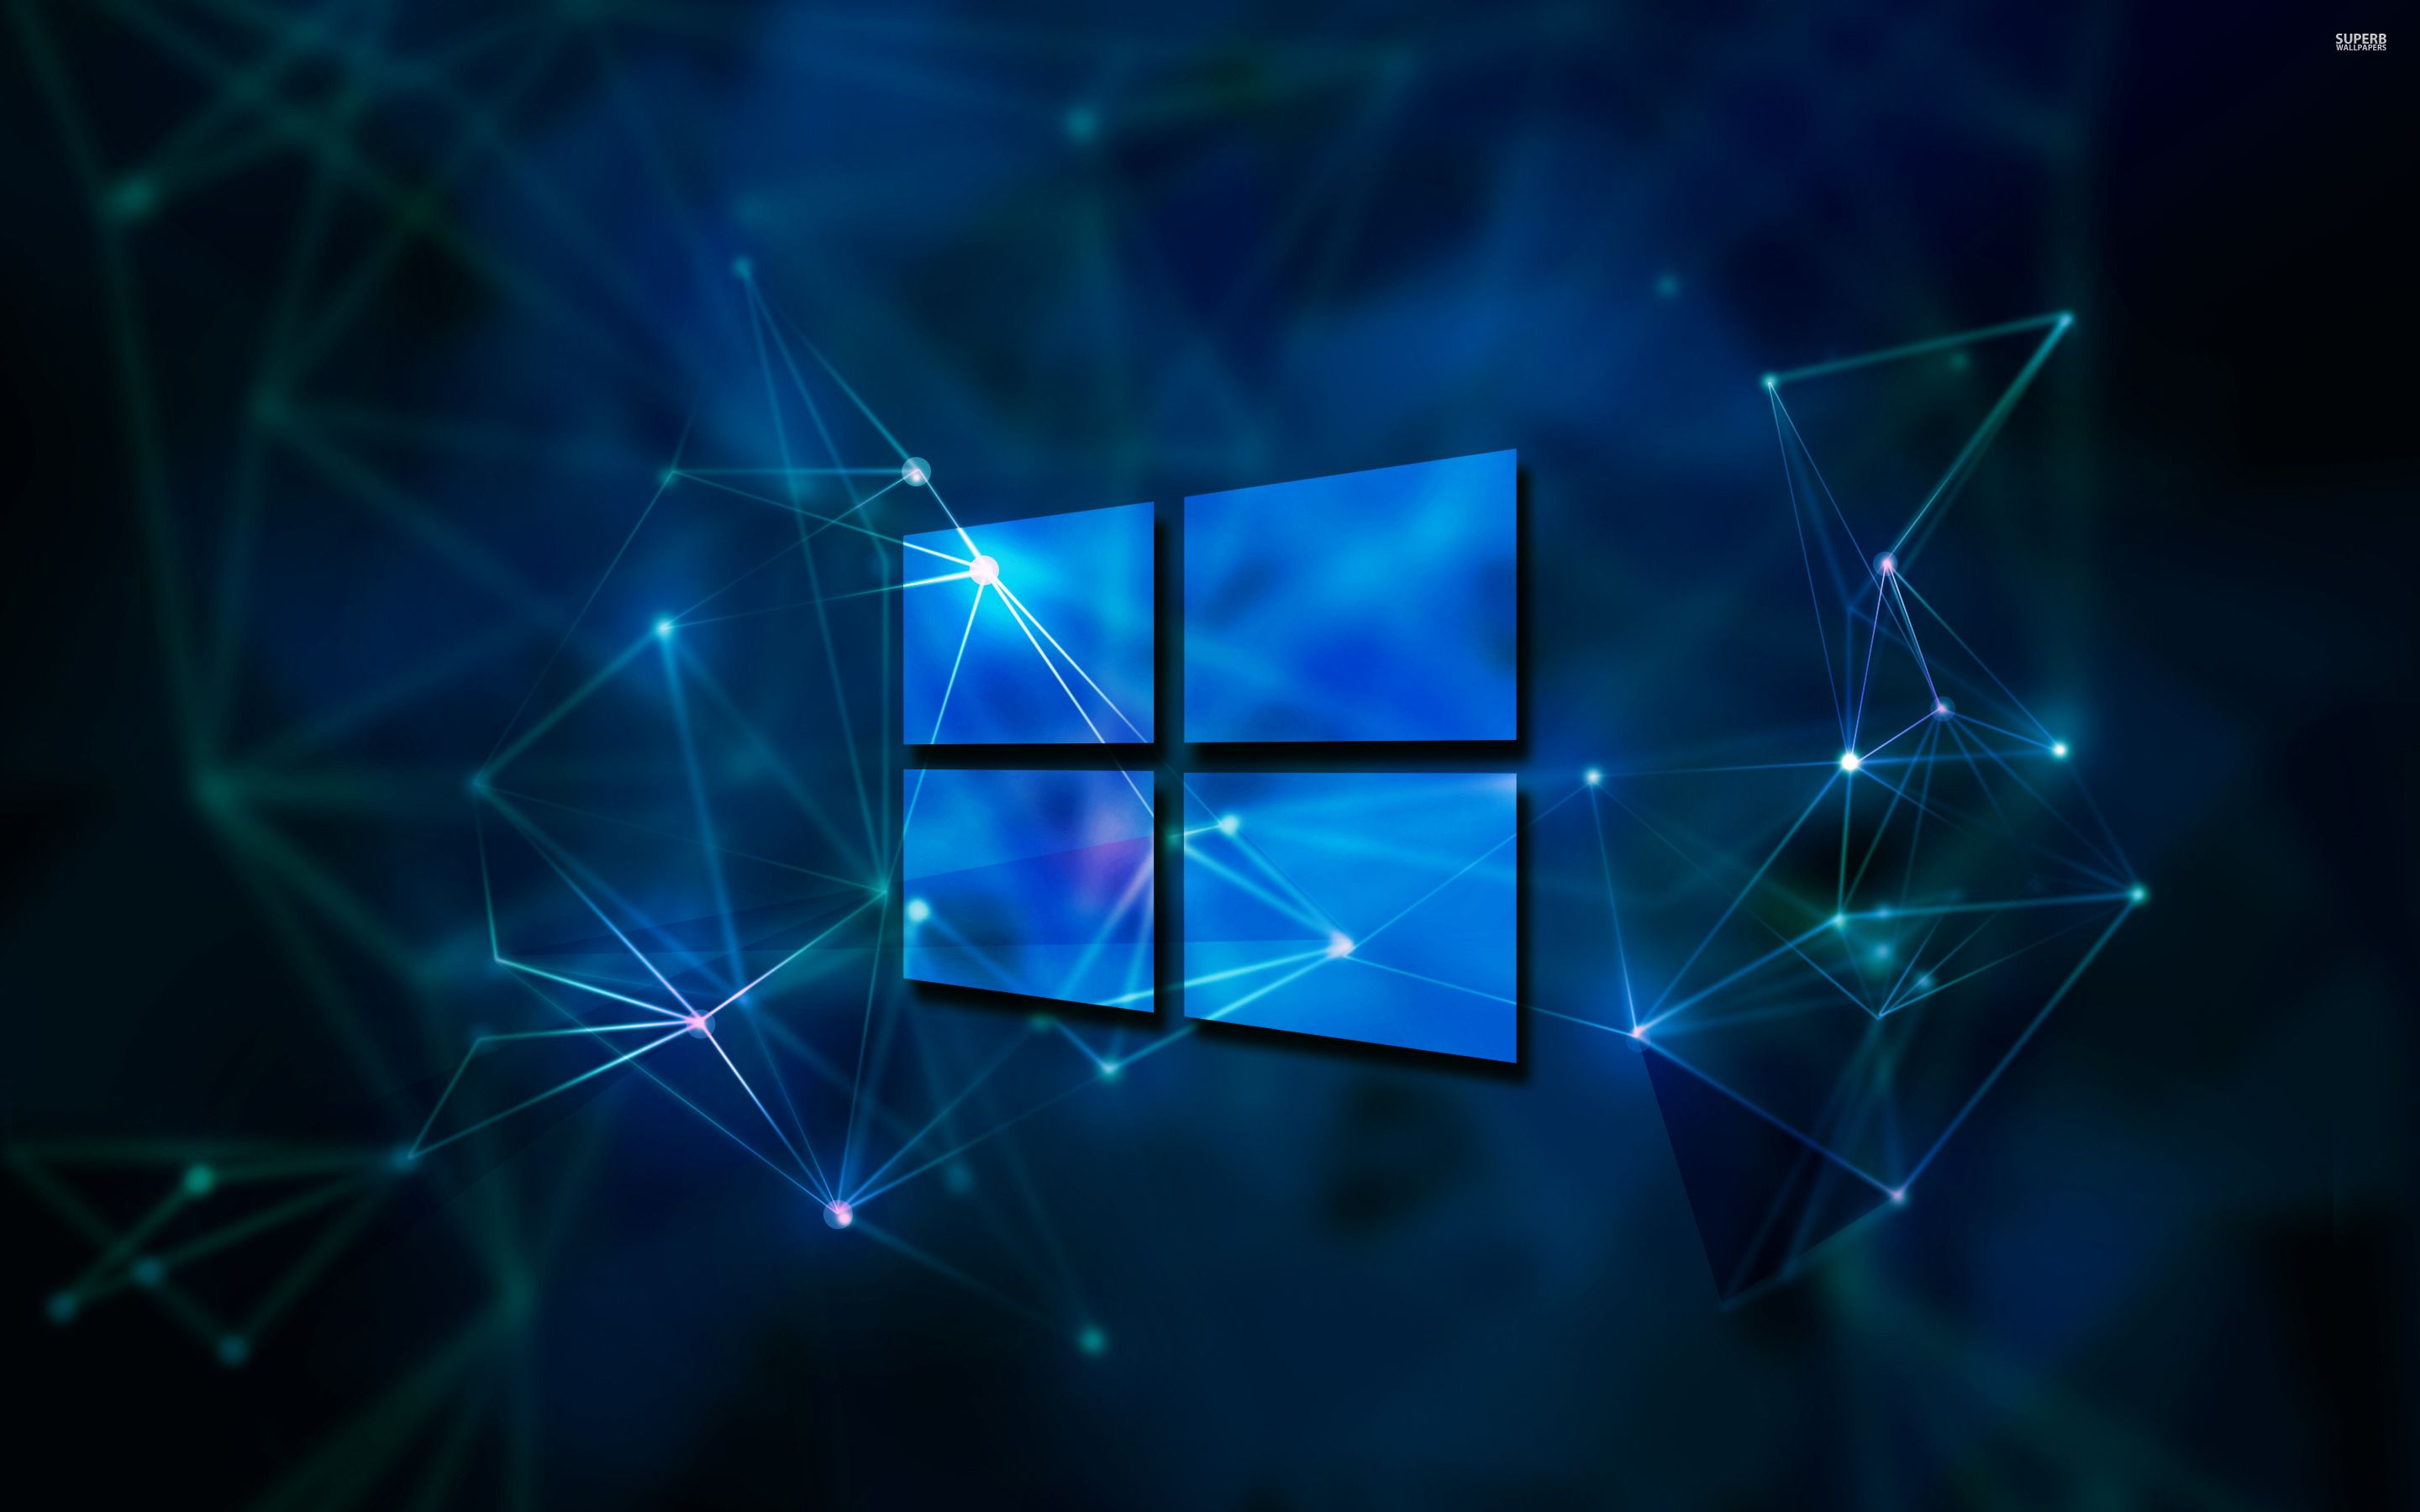 Windows 10 Hd Wallpapers 1920x1080 Posted By John Simpson